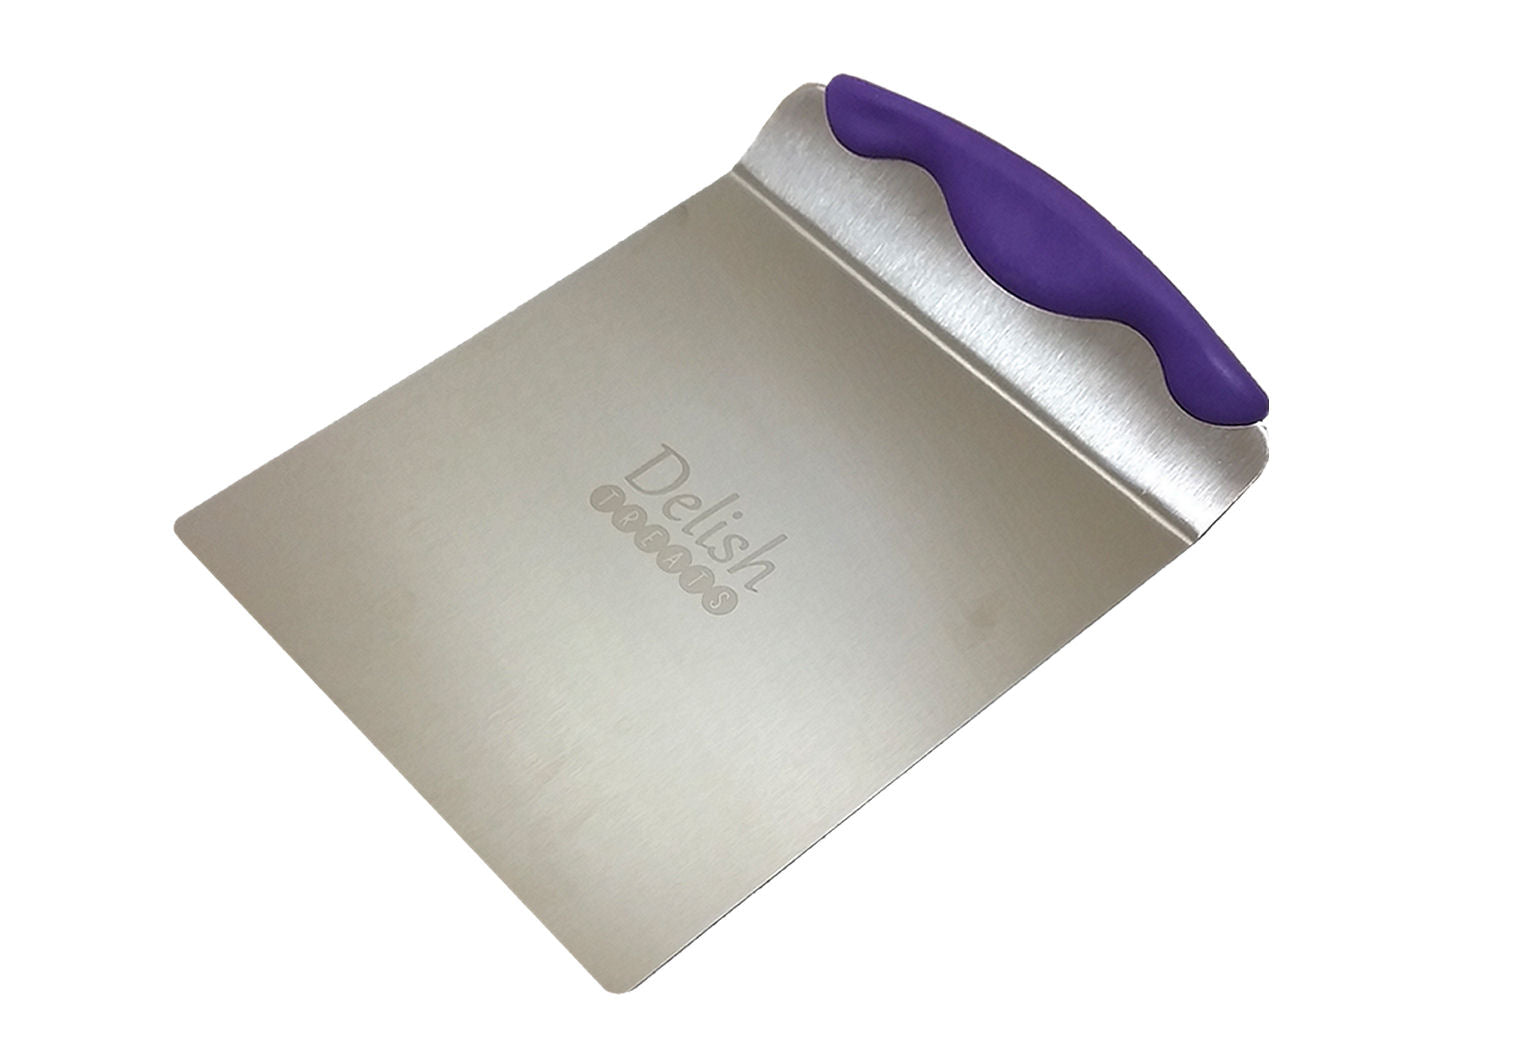 Delish Treats Cake Lifter - Shopaholic for Kids